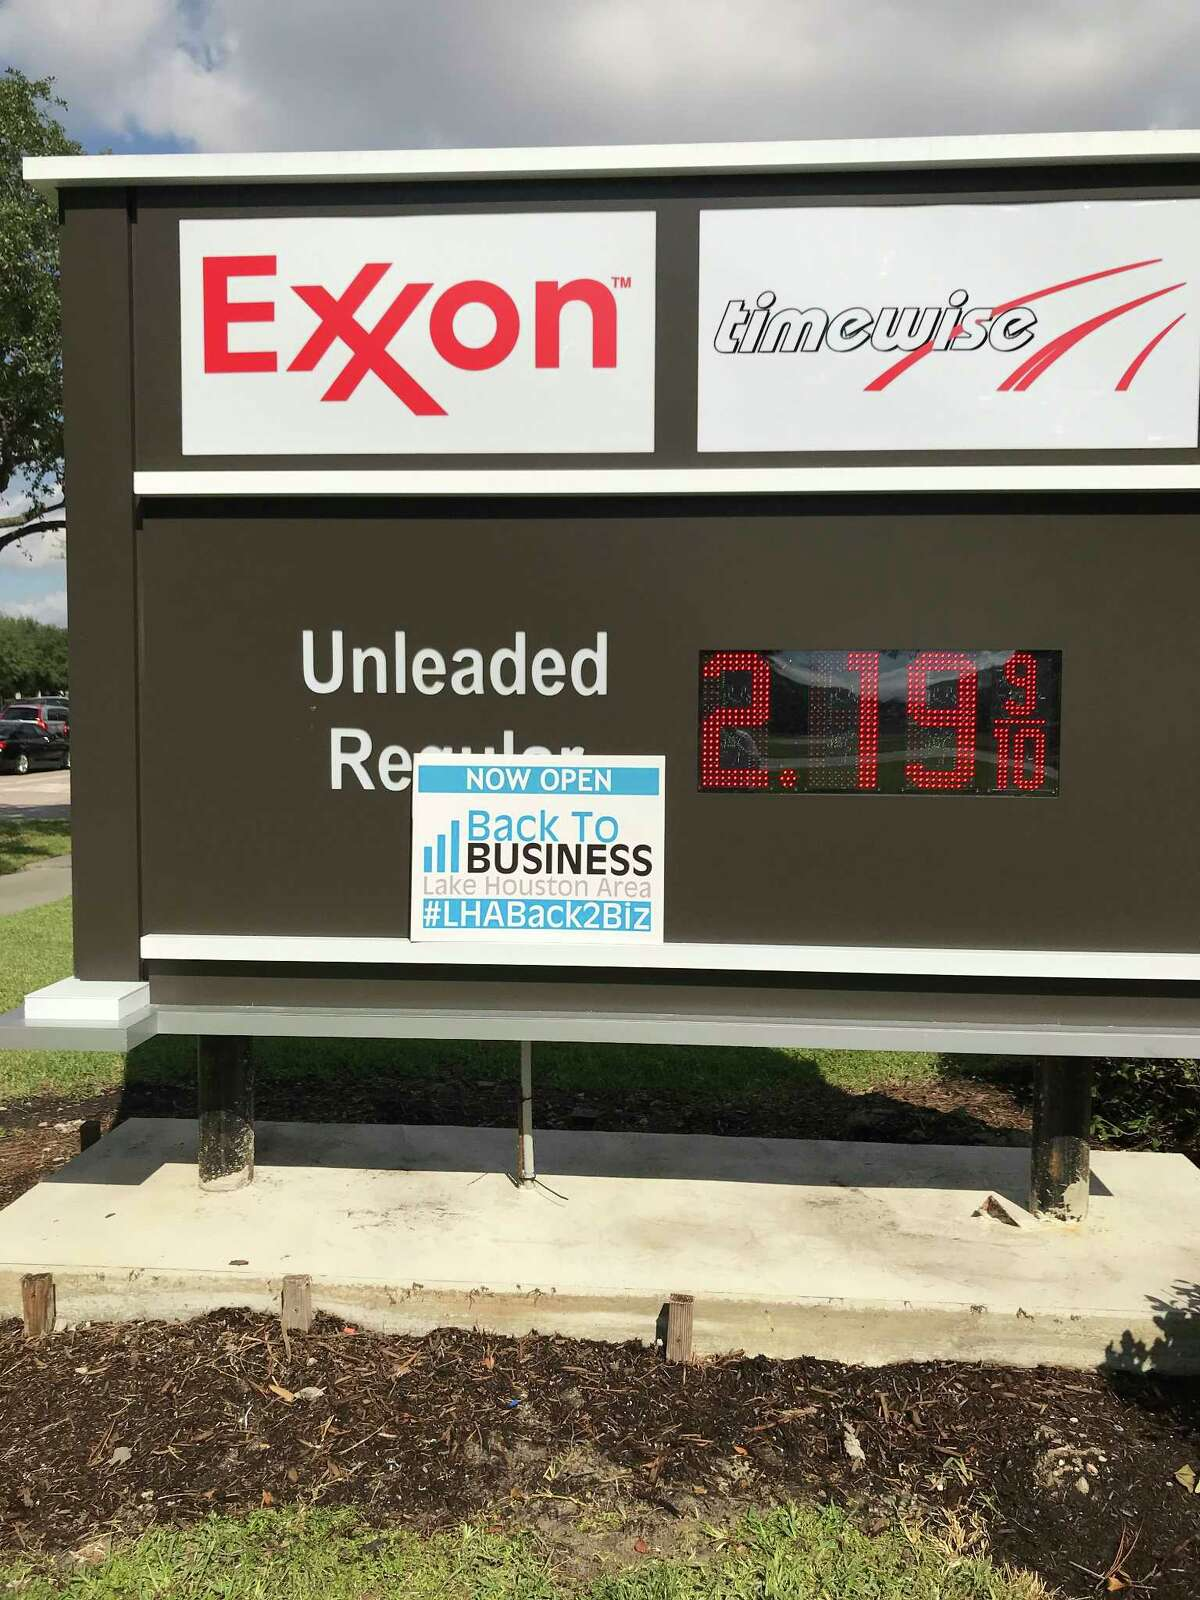 Exxon is back in business.